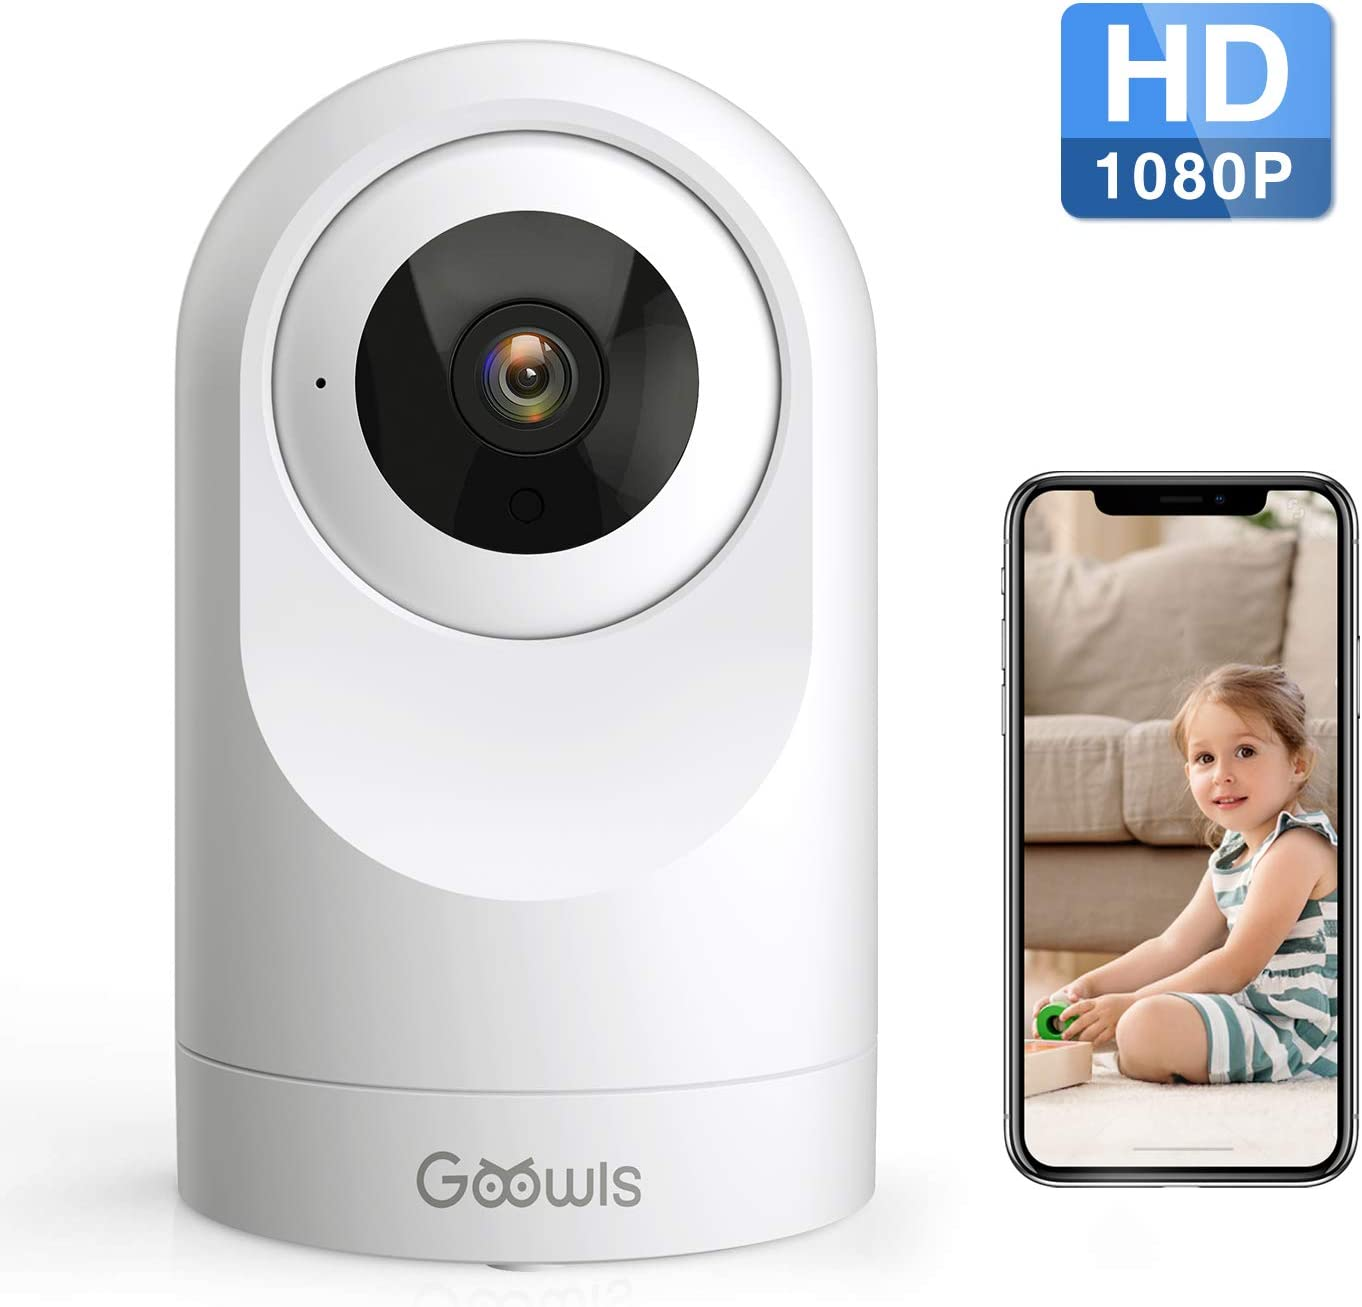 WiFi Camera Indoor, Goowls 1080P HD Home Camera Wireless Security Camera for Baby/Pet/Nanny Monitor Pan/Tilt Night Vision Motion Detection Two-Way Audio Compatible with Alexa Cloud Service